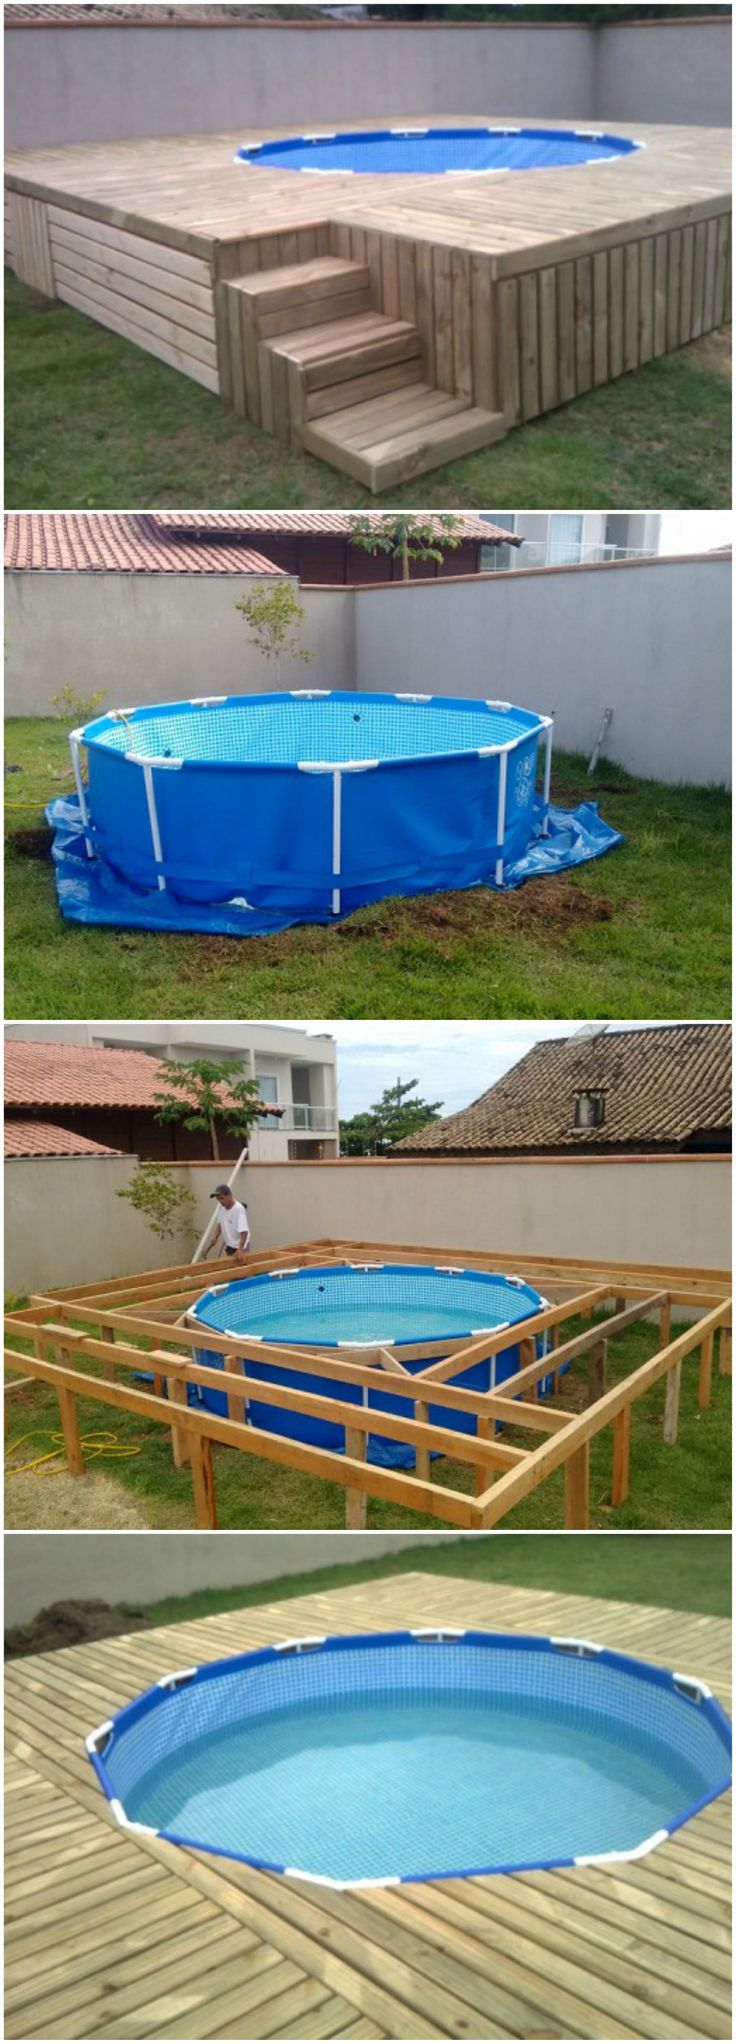 17 best ideas about swimming pool decks on pinterest - Above ground swimming pools with deck ...